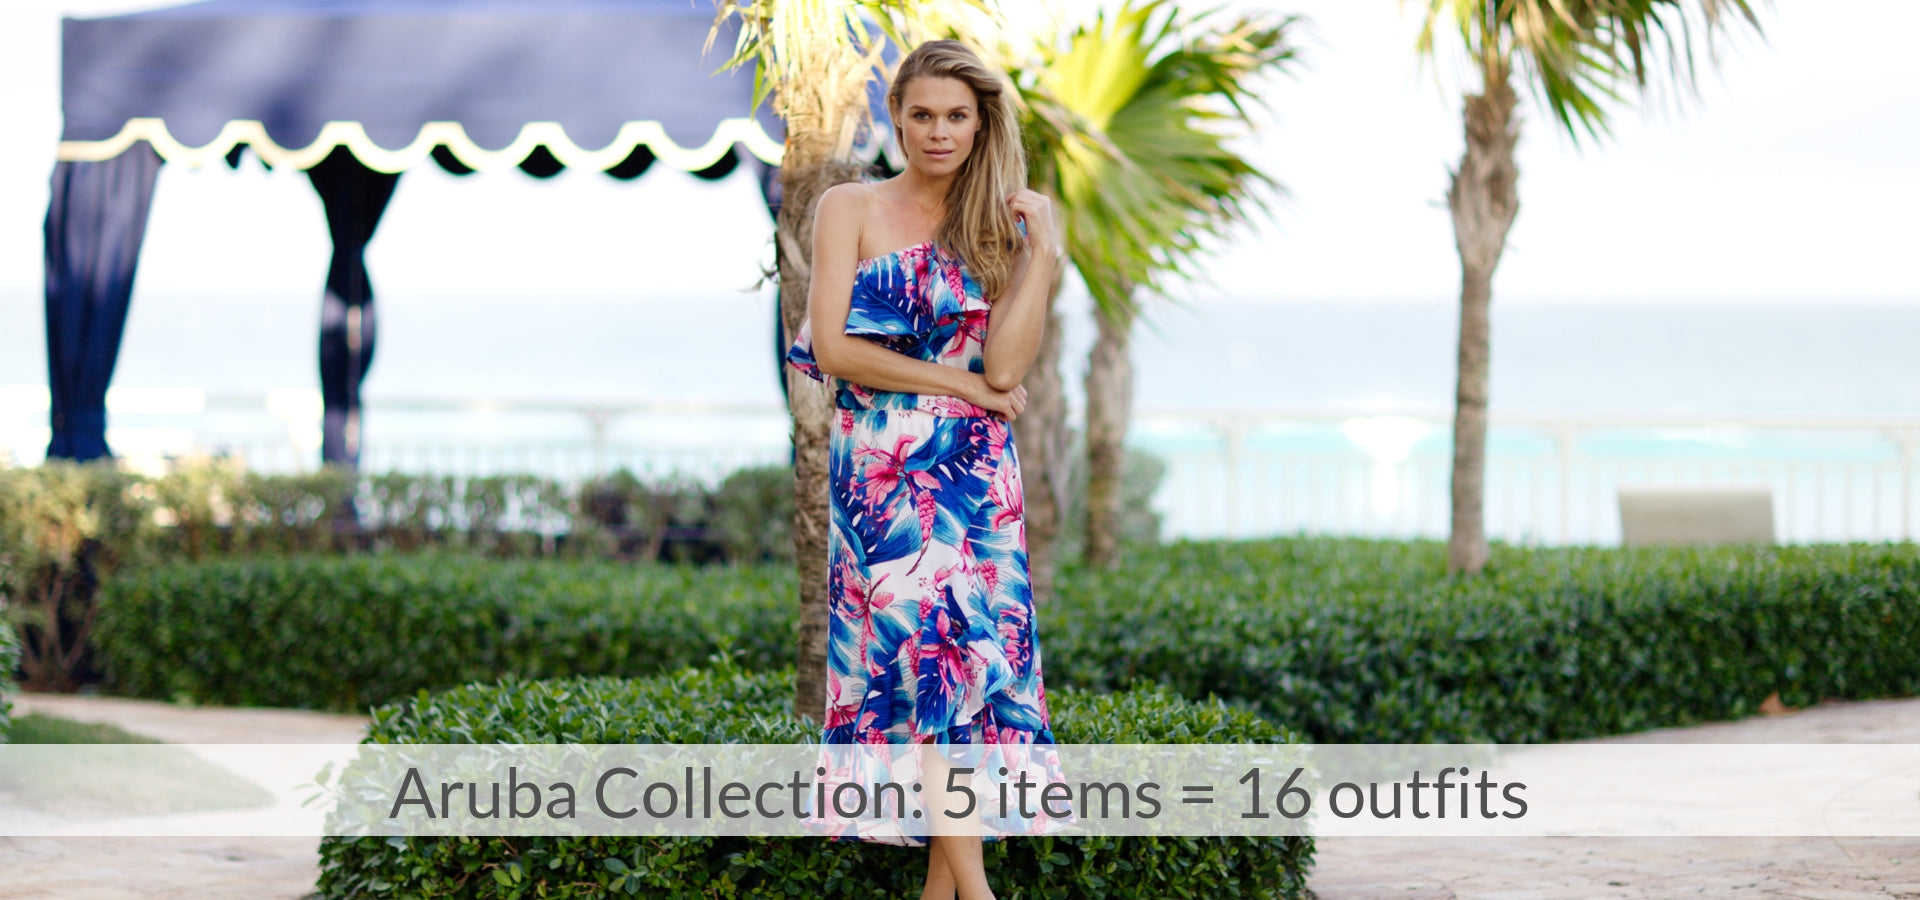 Aruba Collection